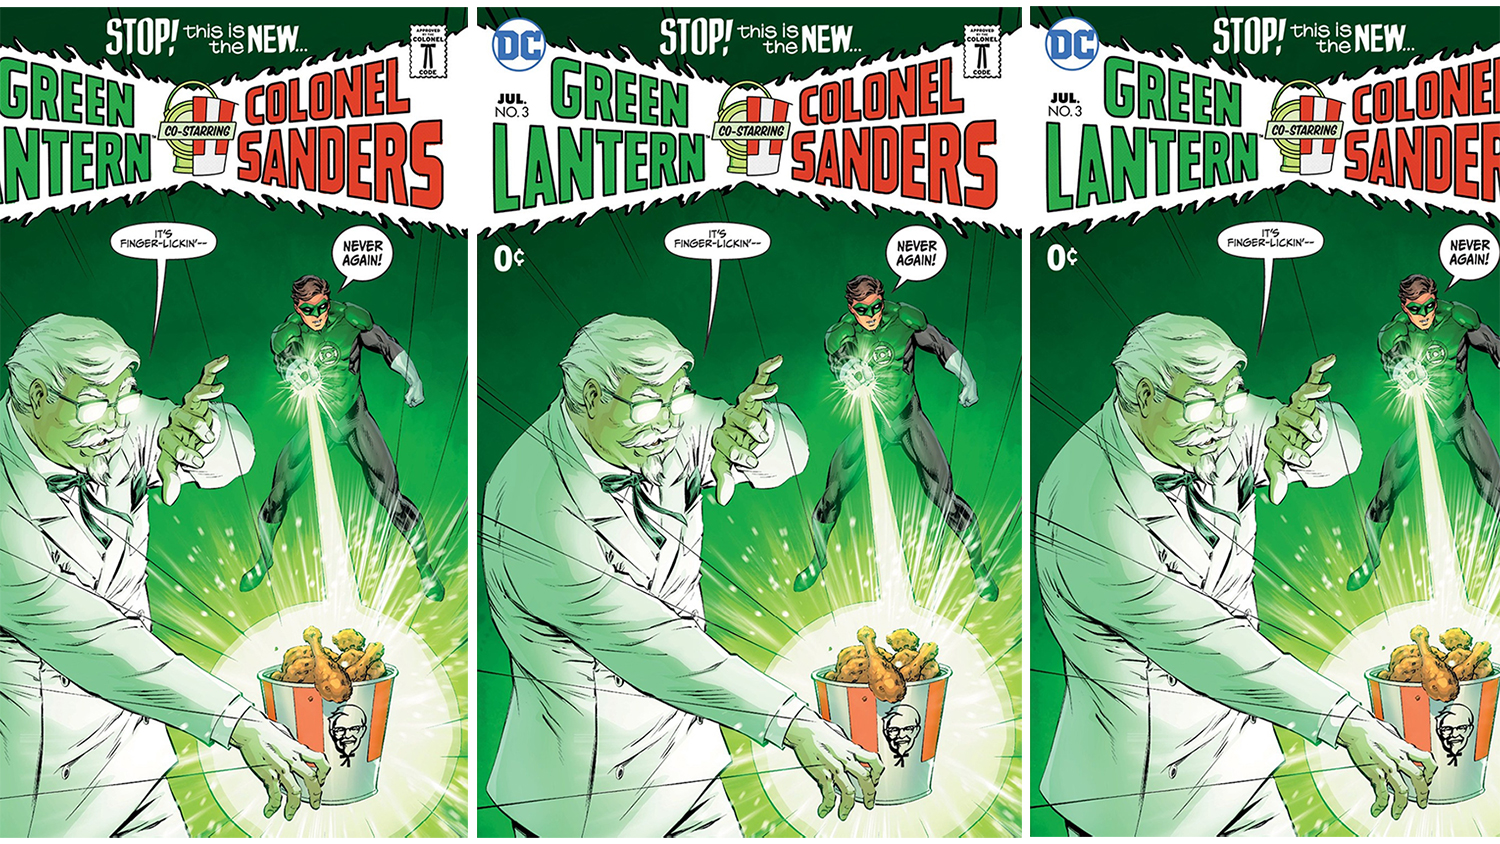 Colonel Sanders Teams Up With Green Lantern For New Comic Book